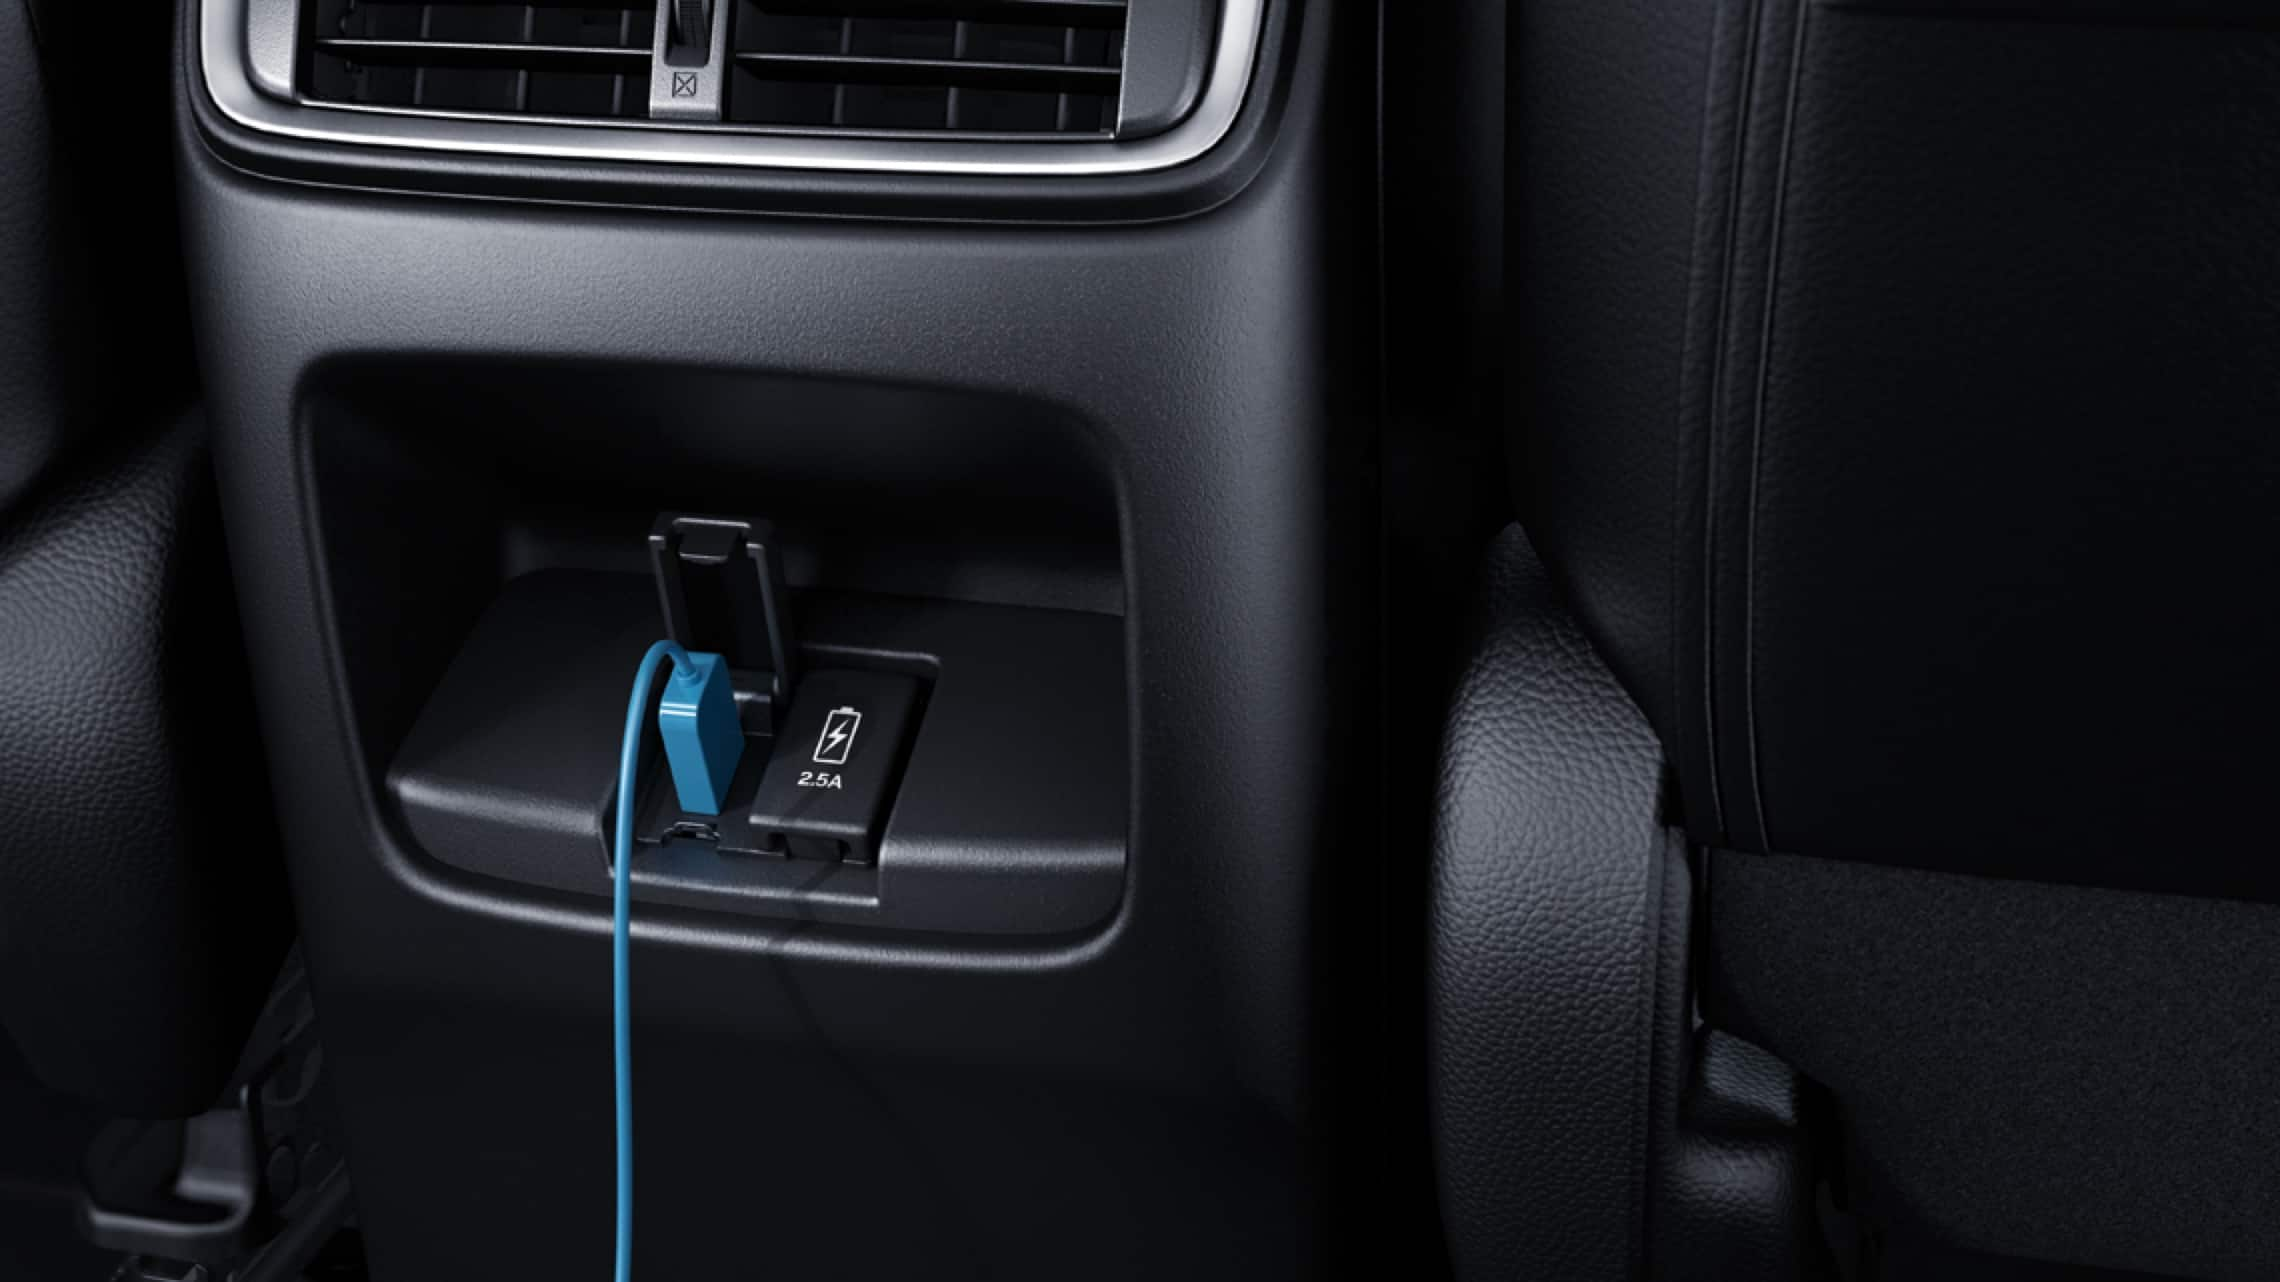 Interior view of rear USB ports in the 2019 Honda CR-V.